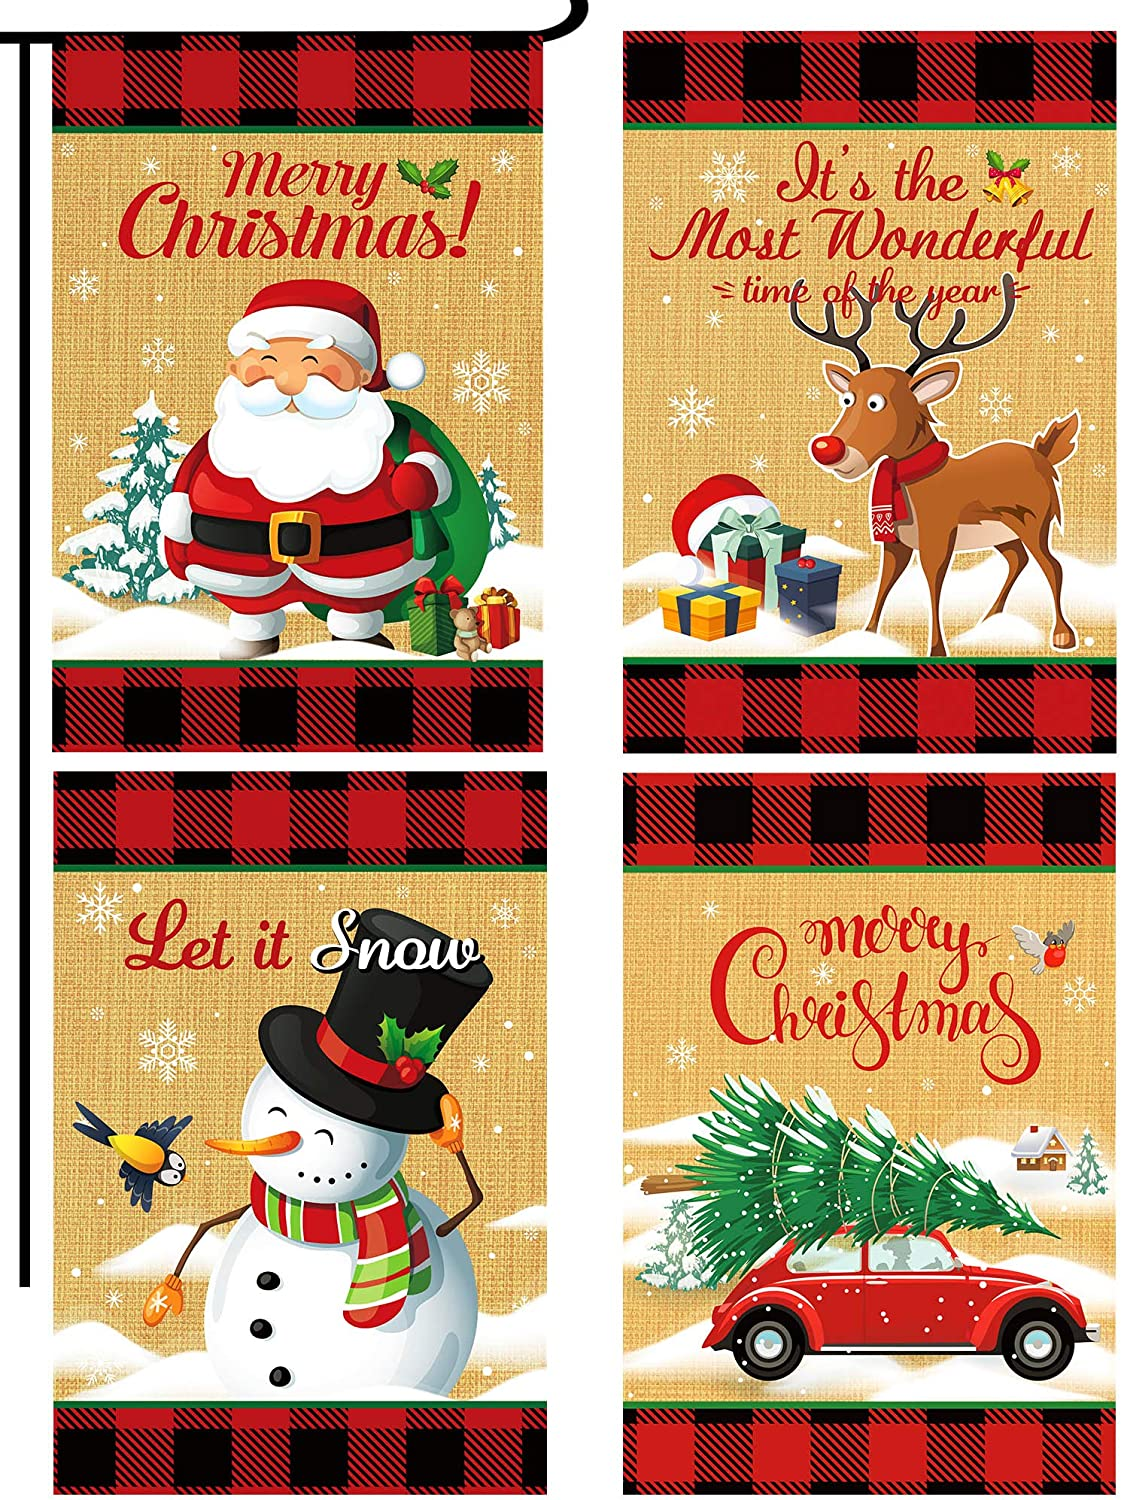 Boao 4 Pieces Christmas Garden Flag Double Sided Winter Decorative Flag with Santa Snowman Elk Car Design for Winter House Yard Decoration